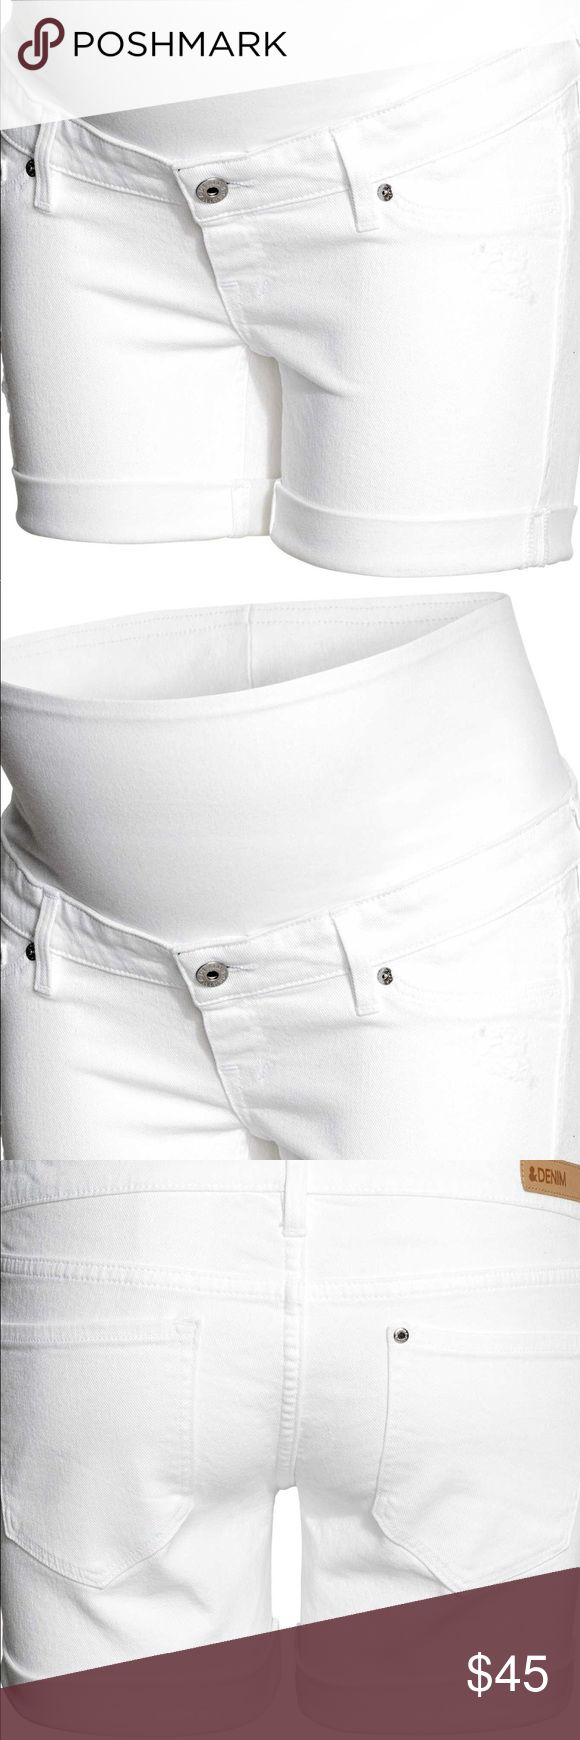 HM maternity white denim shorts Shorts in stretch denim with heavily distressed details. Wide ribbing at waist for added comfort. Mock front pockets, mock fly, regular back pockets, and sewn cuffs at the hems.  95% cotton  5% spandex H&M Shorts